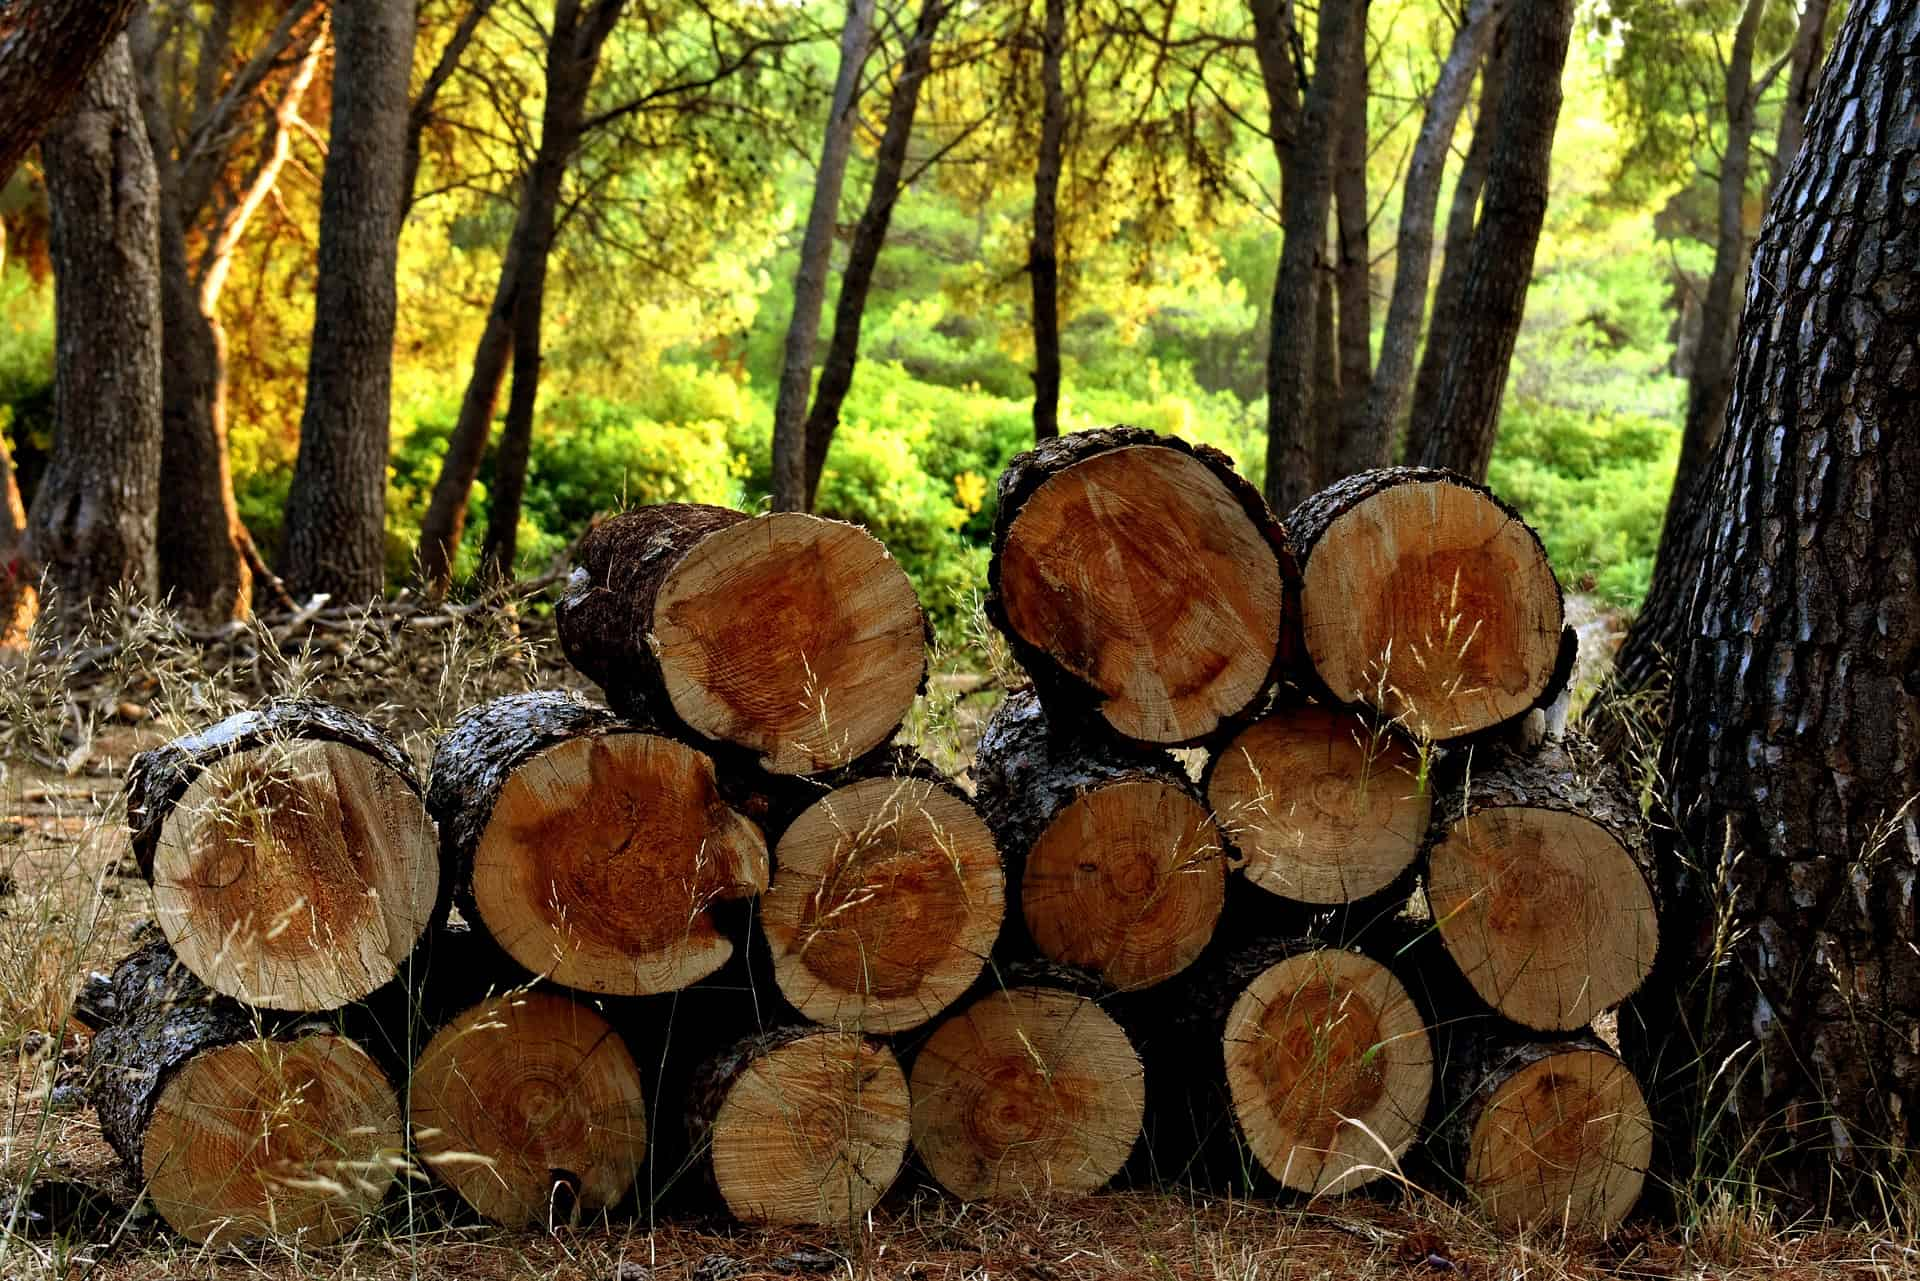 Malaysian Timber Industry: A Promising Future - Business Today